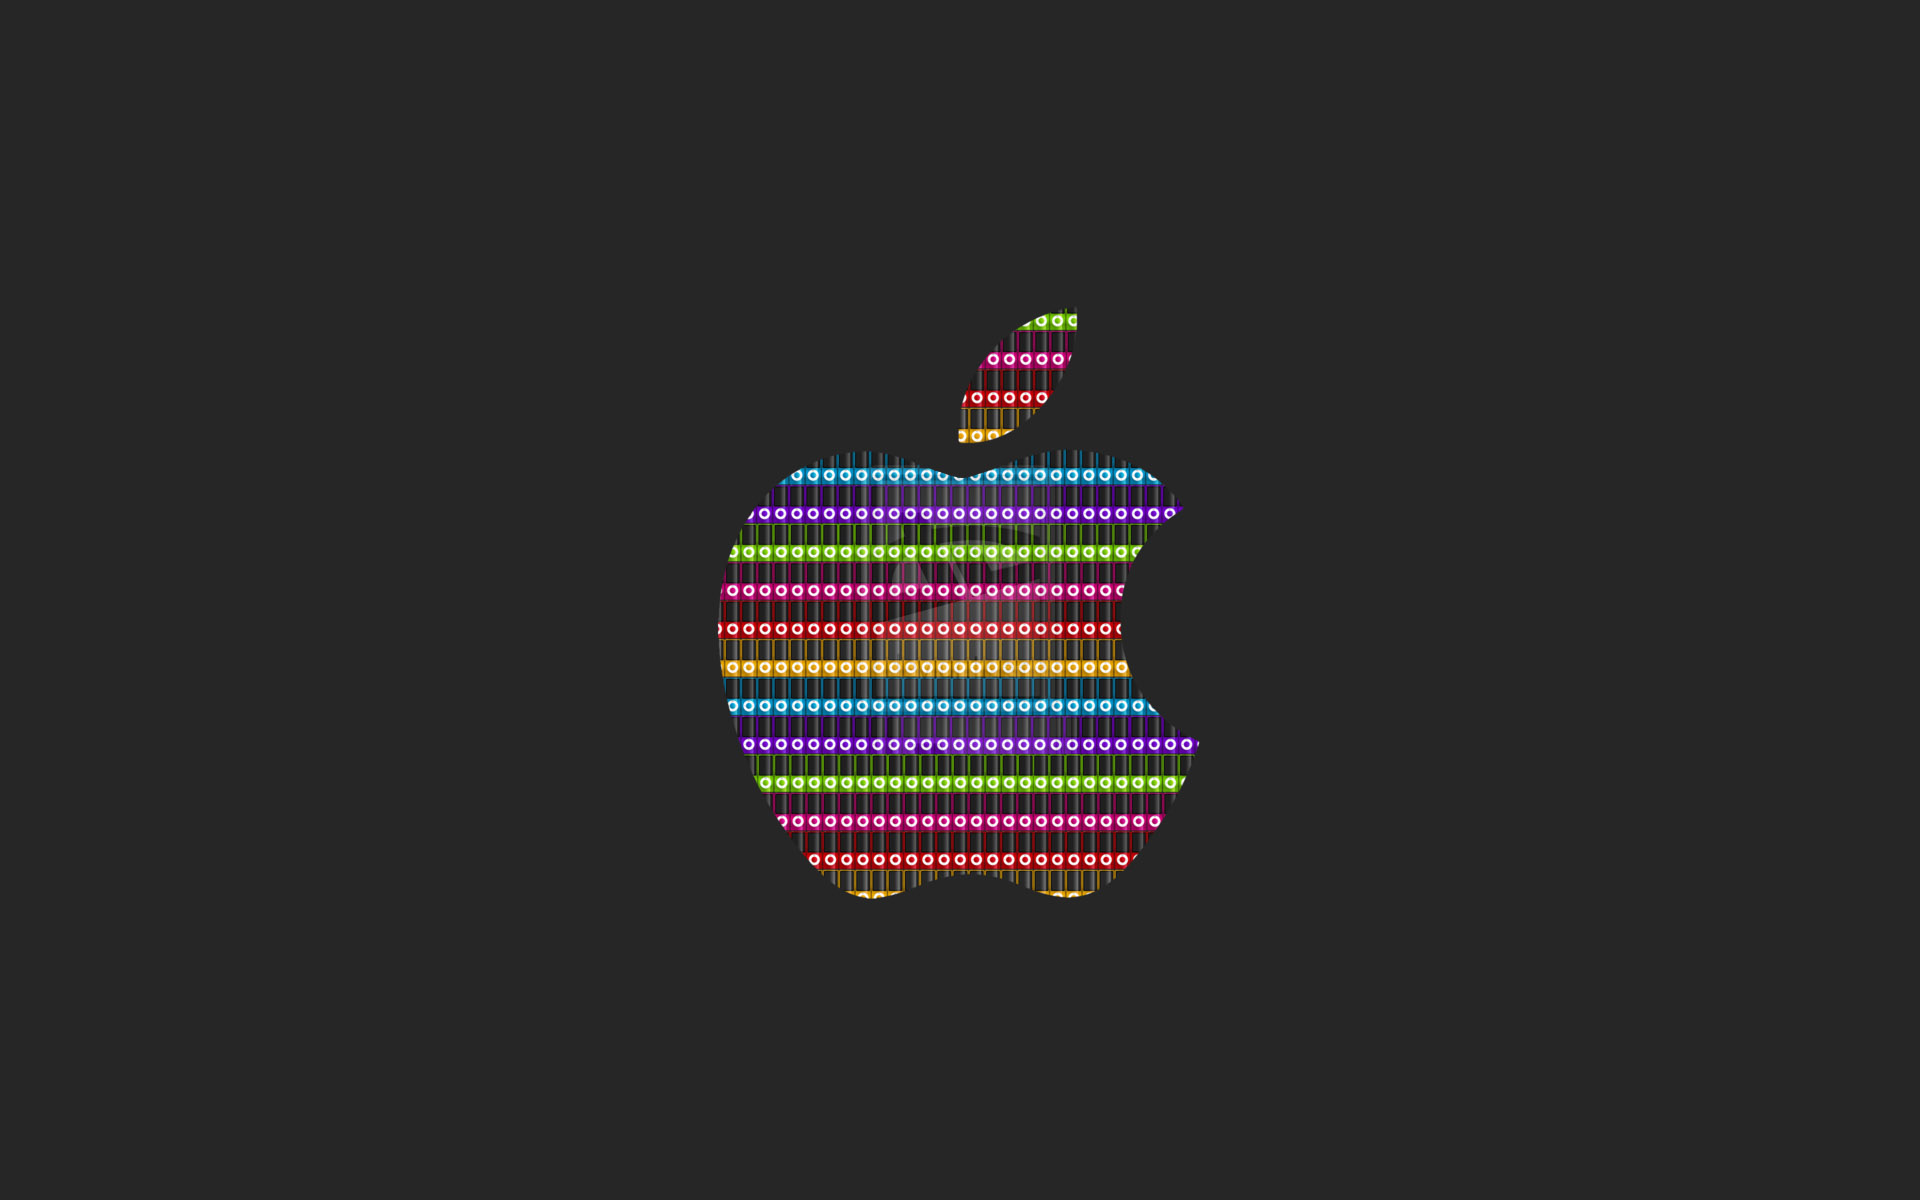 HD Apple wallpaper 18773